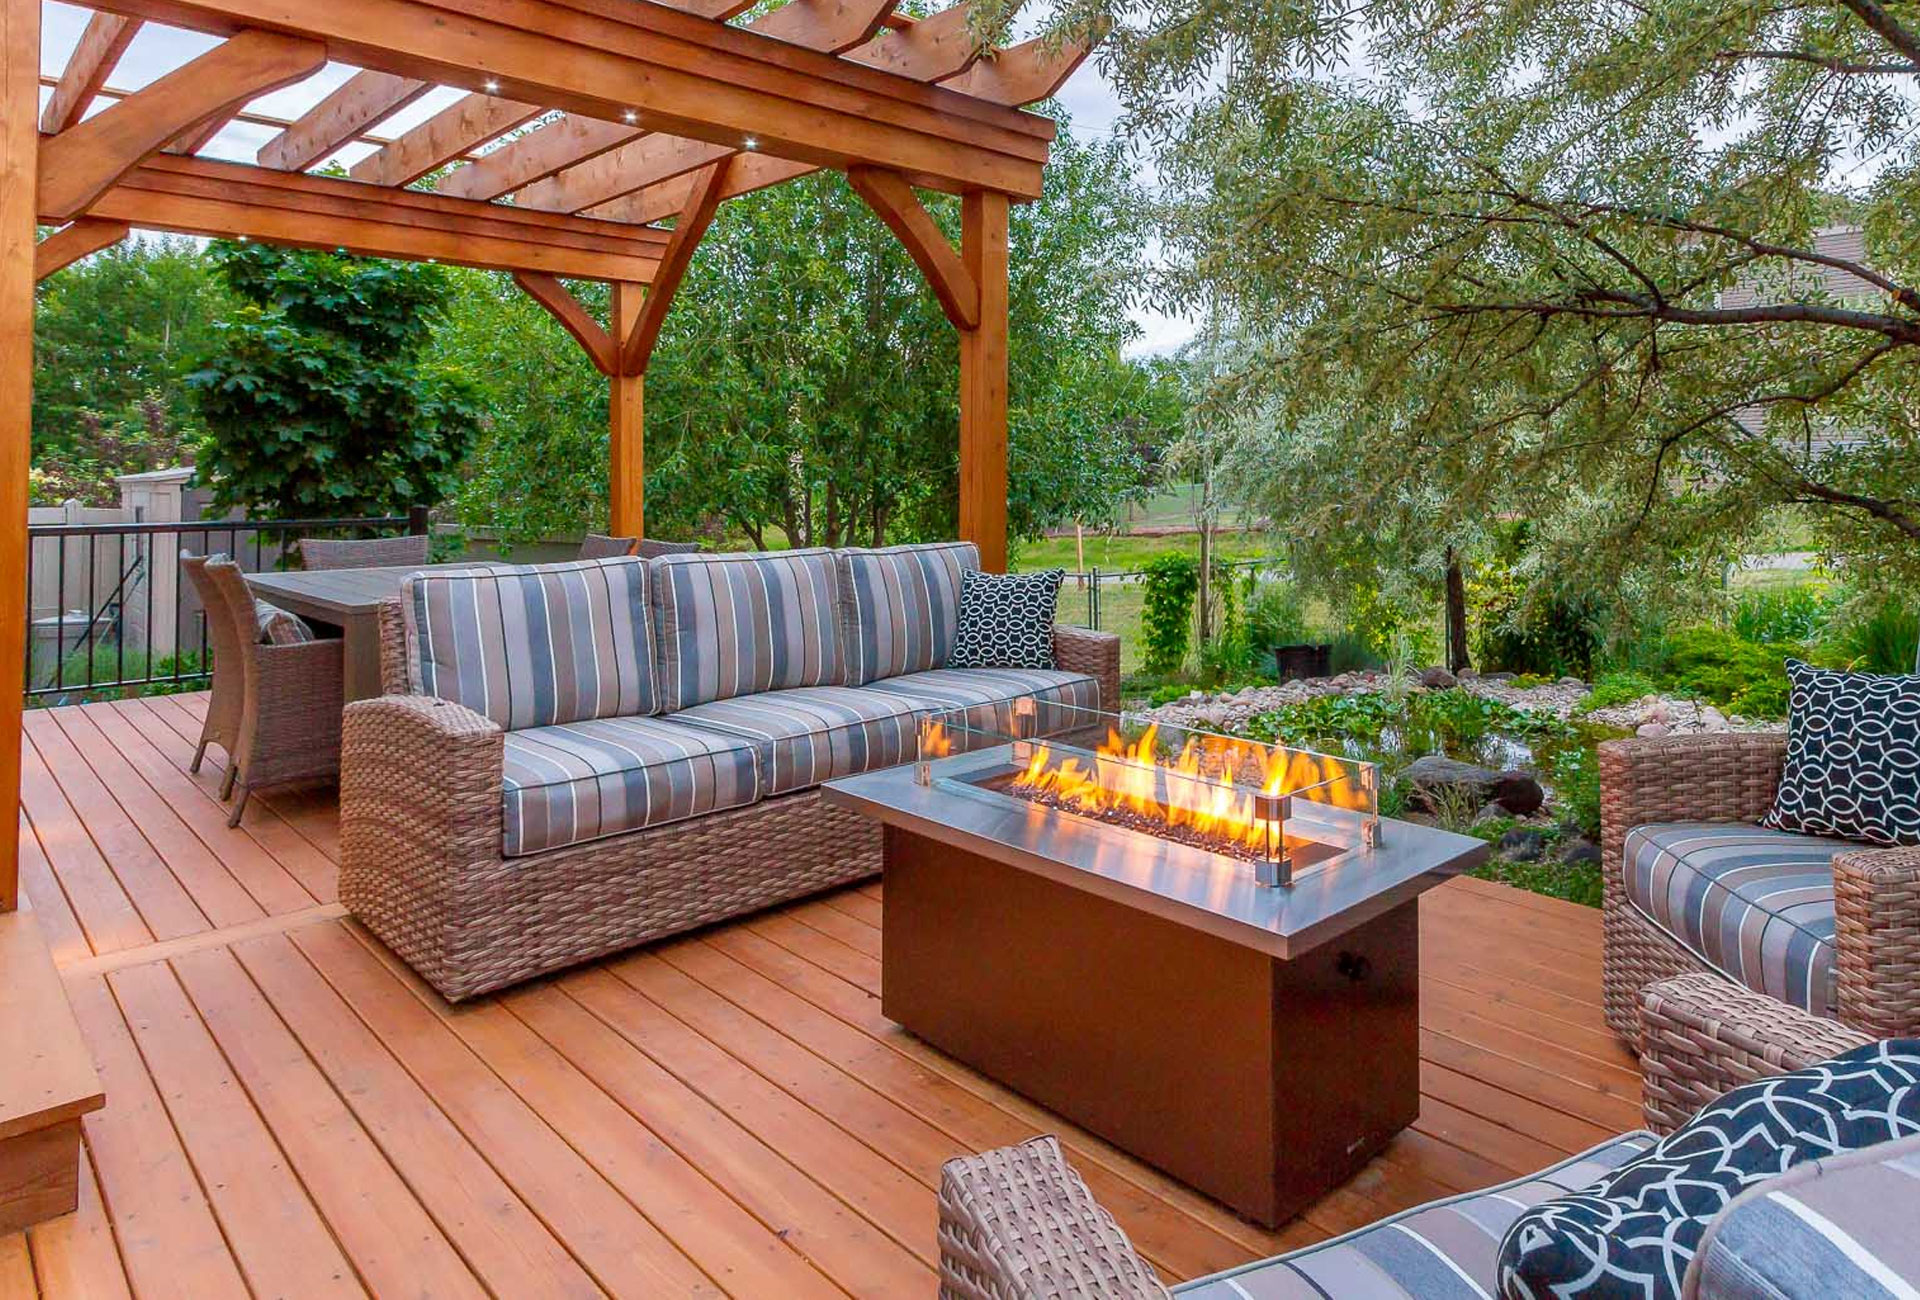 Welcome  Paramount Custom Decks. Contemporary Garden Patio Designs. Plastic Patio Lawn Chairs. Director Chair Patio Set. Apt Patio Decorating Ideas. Cheap Patio Slabs Kent. Patio Brick Pavers Pictures. Building A Patio Cover Attached To House. Ravenna Patio Table Chair Set Covers